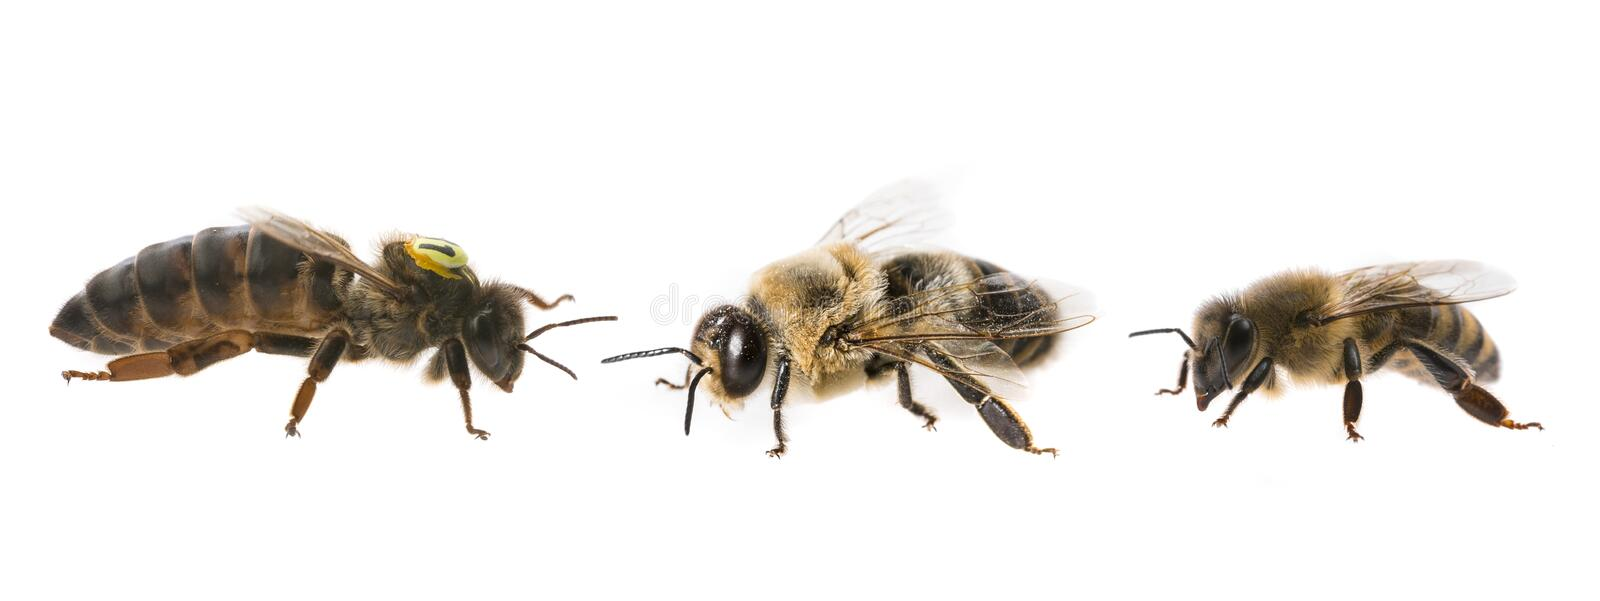 Bee queen mother and drone and bee worker - three types of bee royalty free stock images